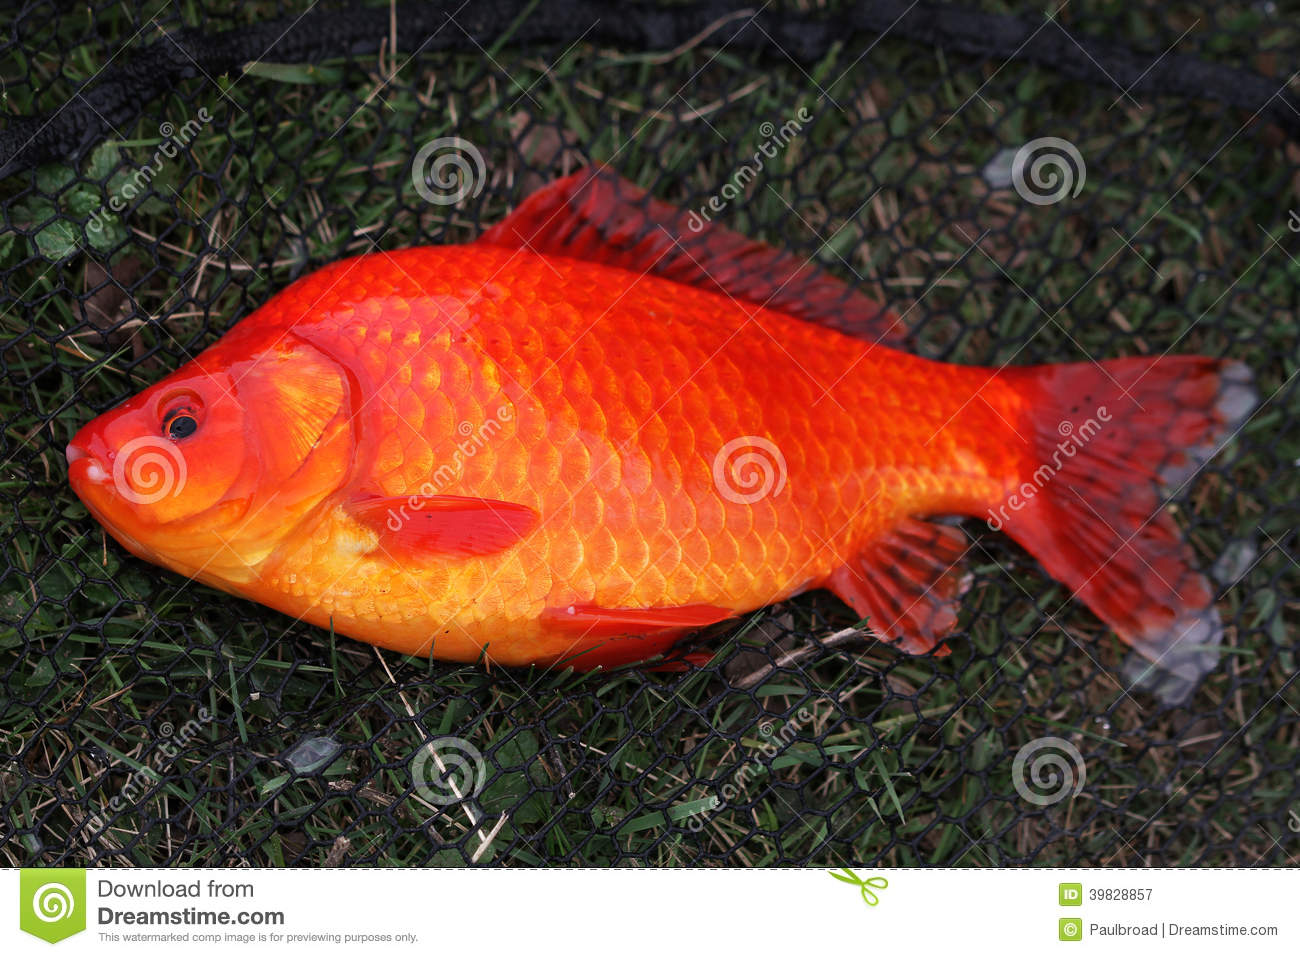 Grand poisson rouge photo stock image 39828857 for Prix poisson rouge jardiland